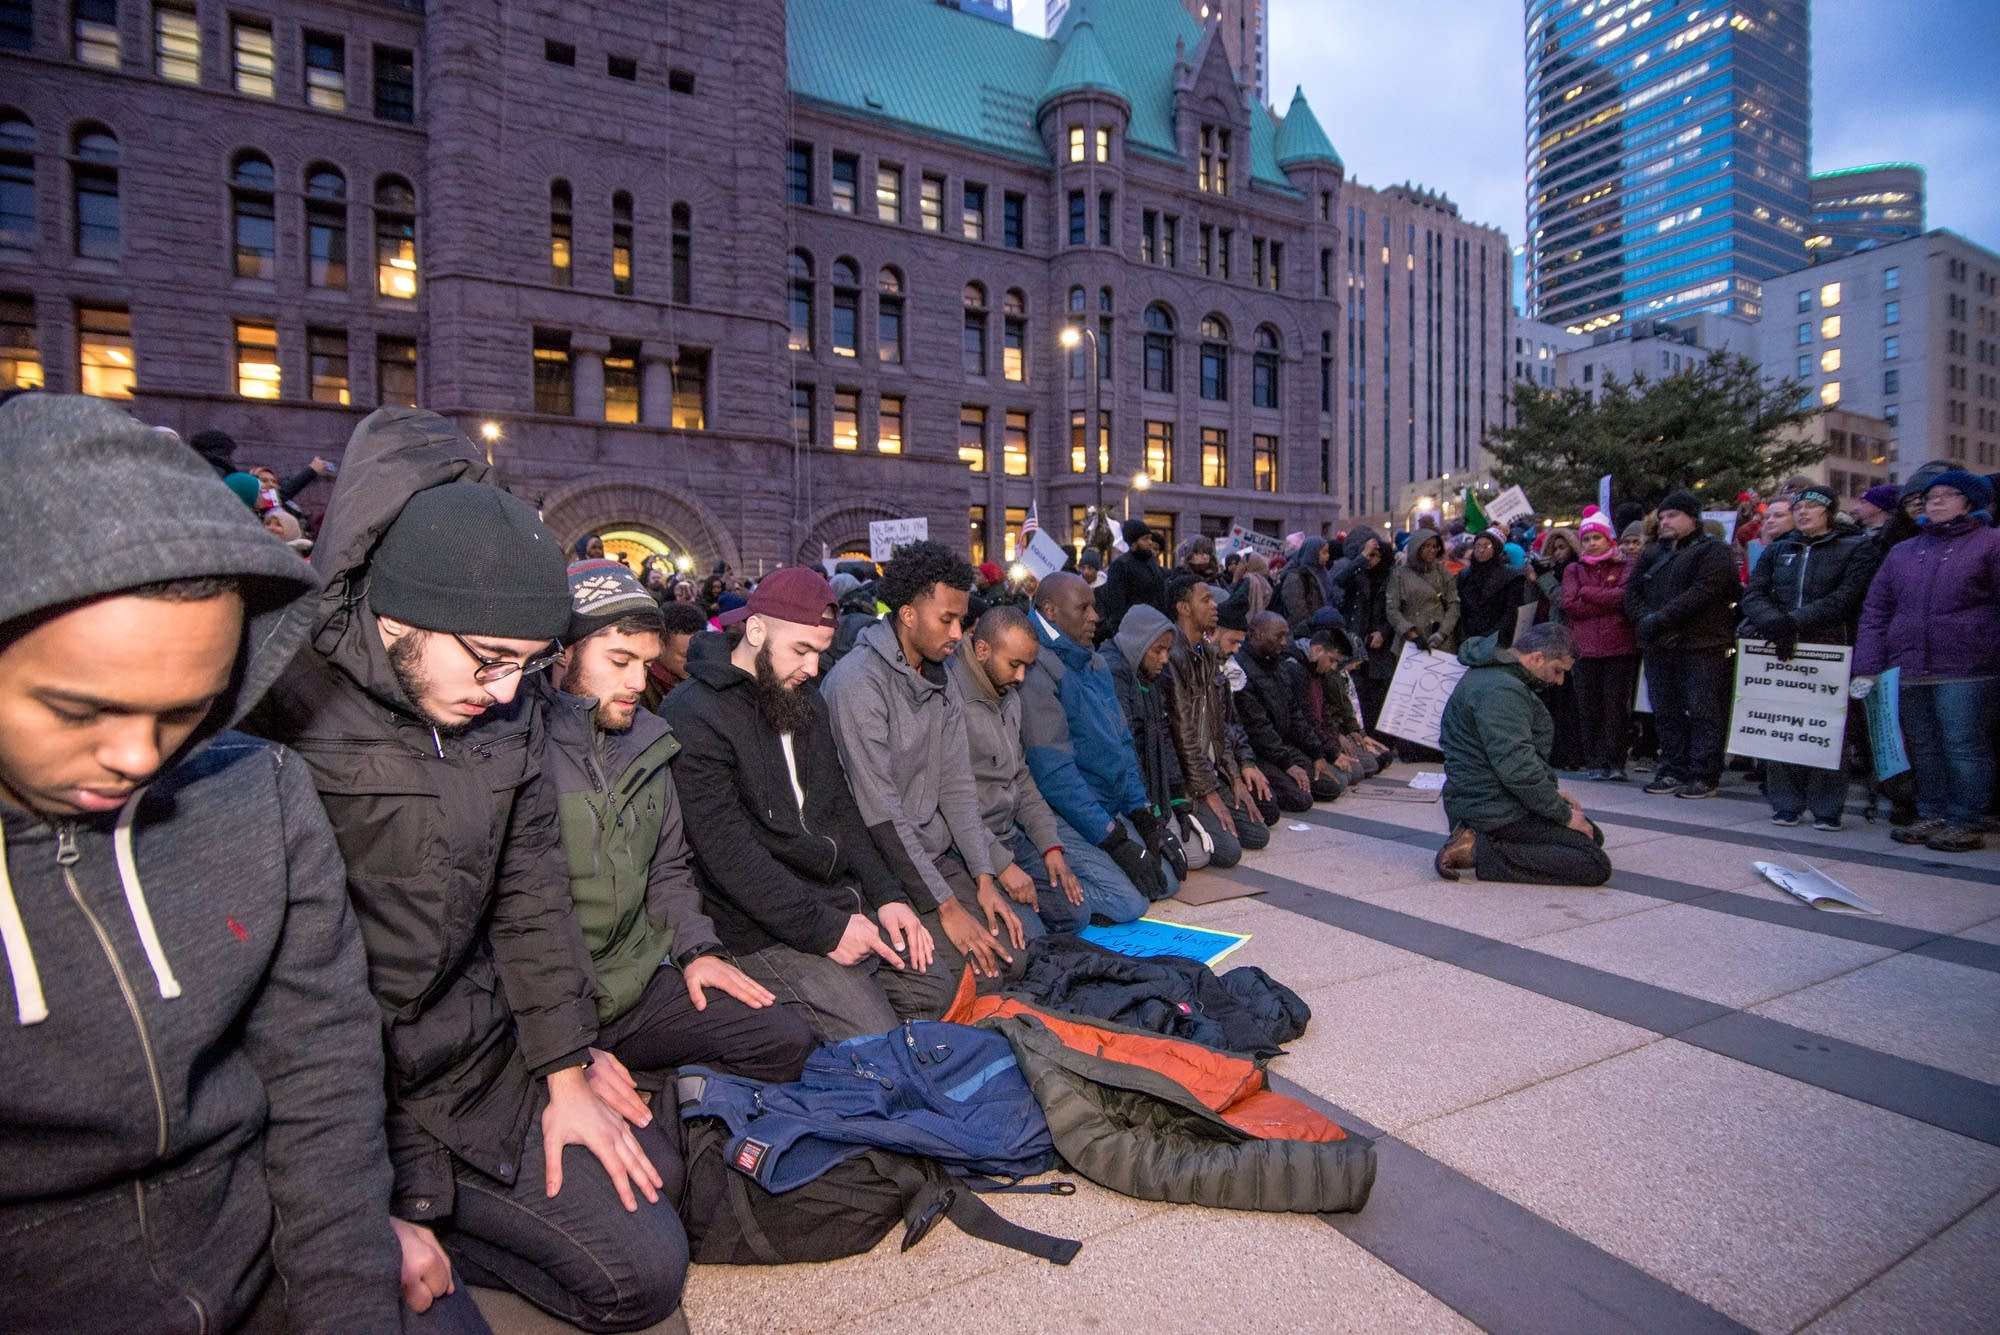 Muslim men pray during a protest